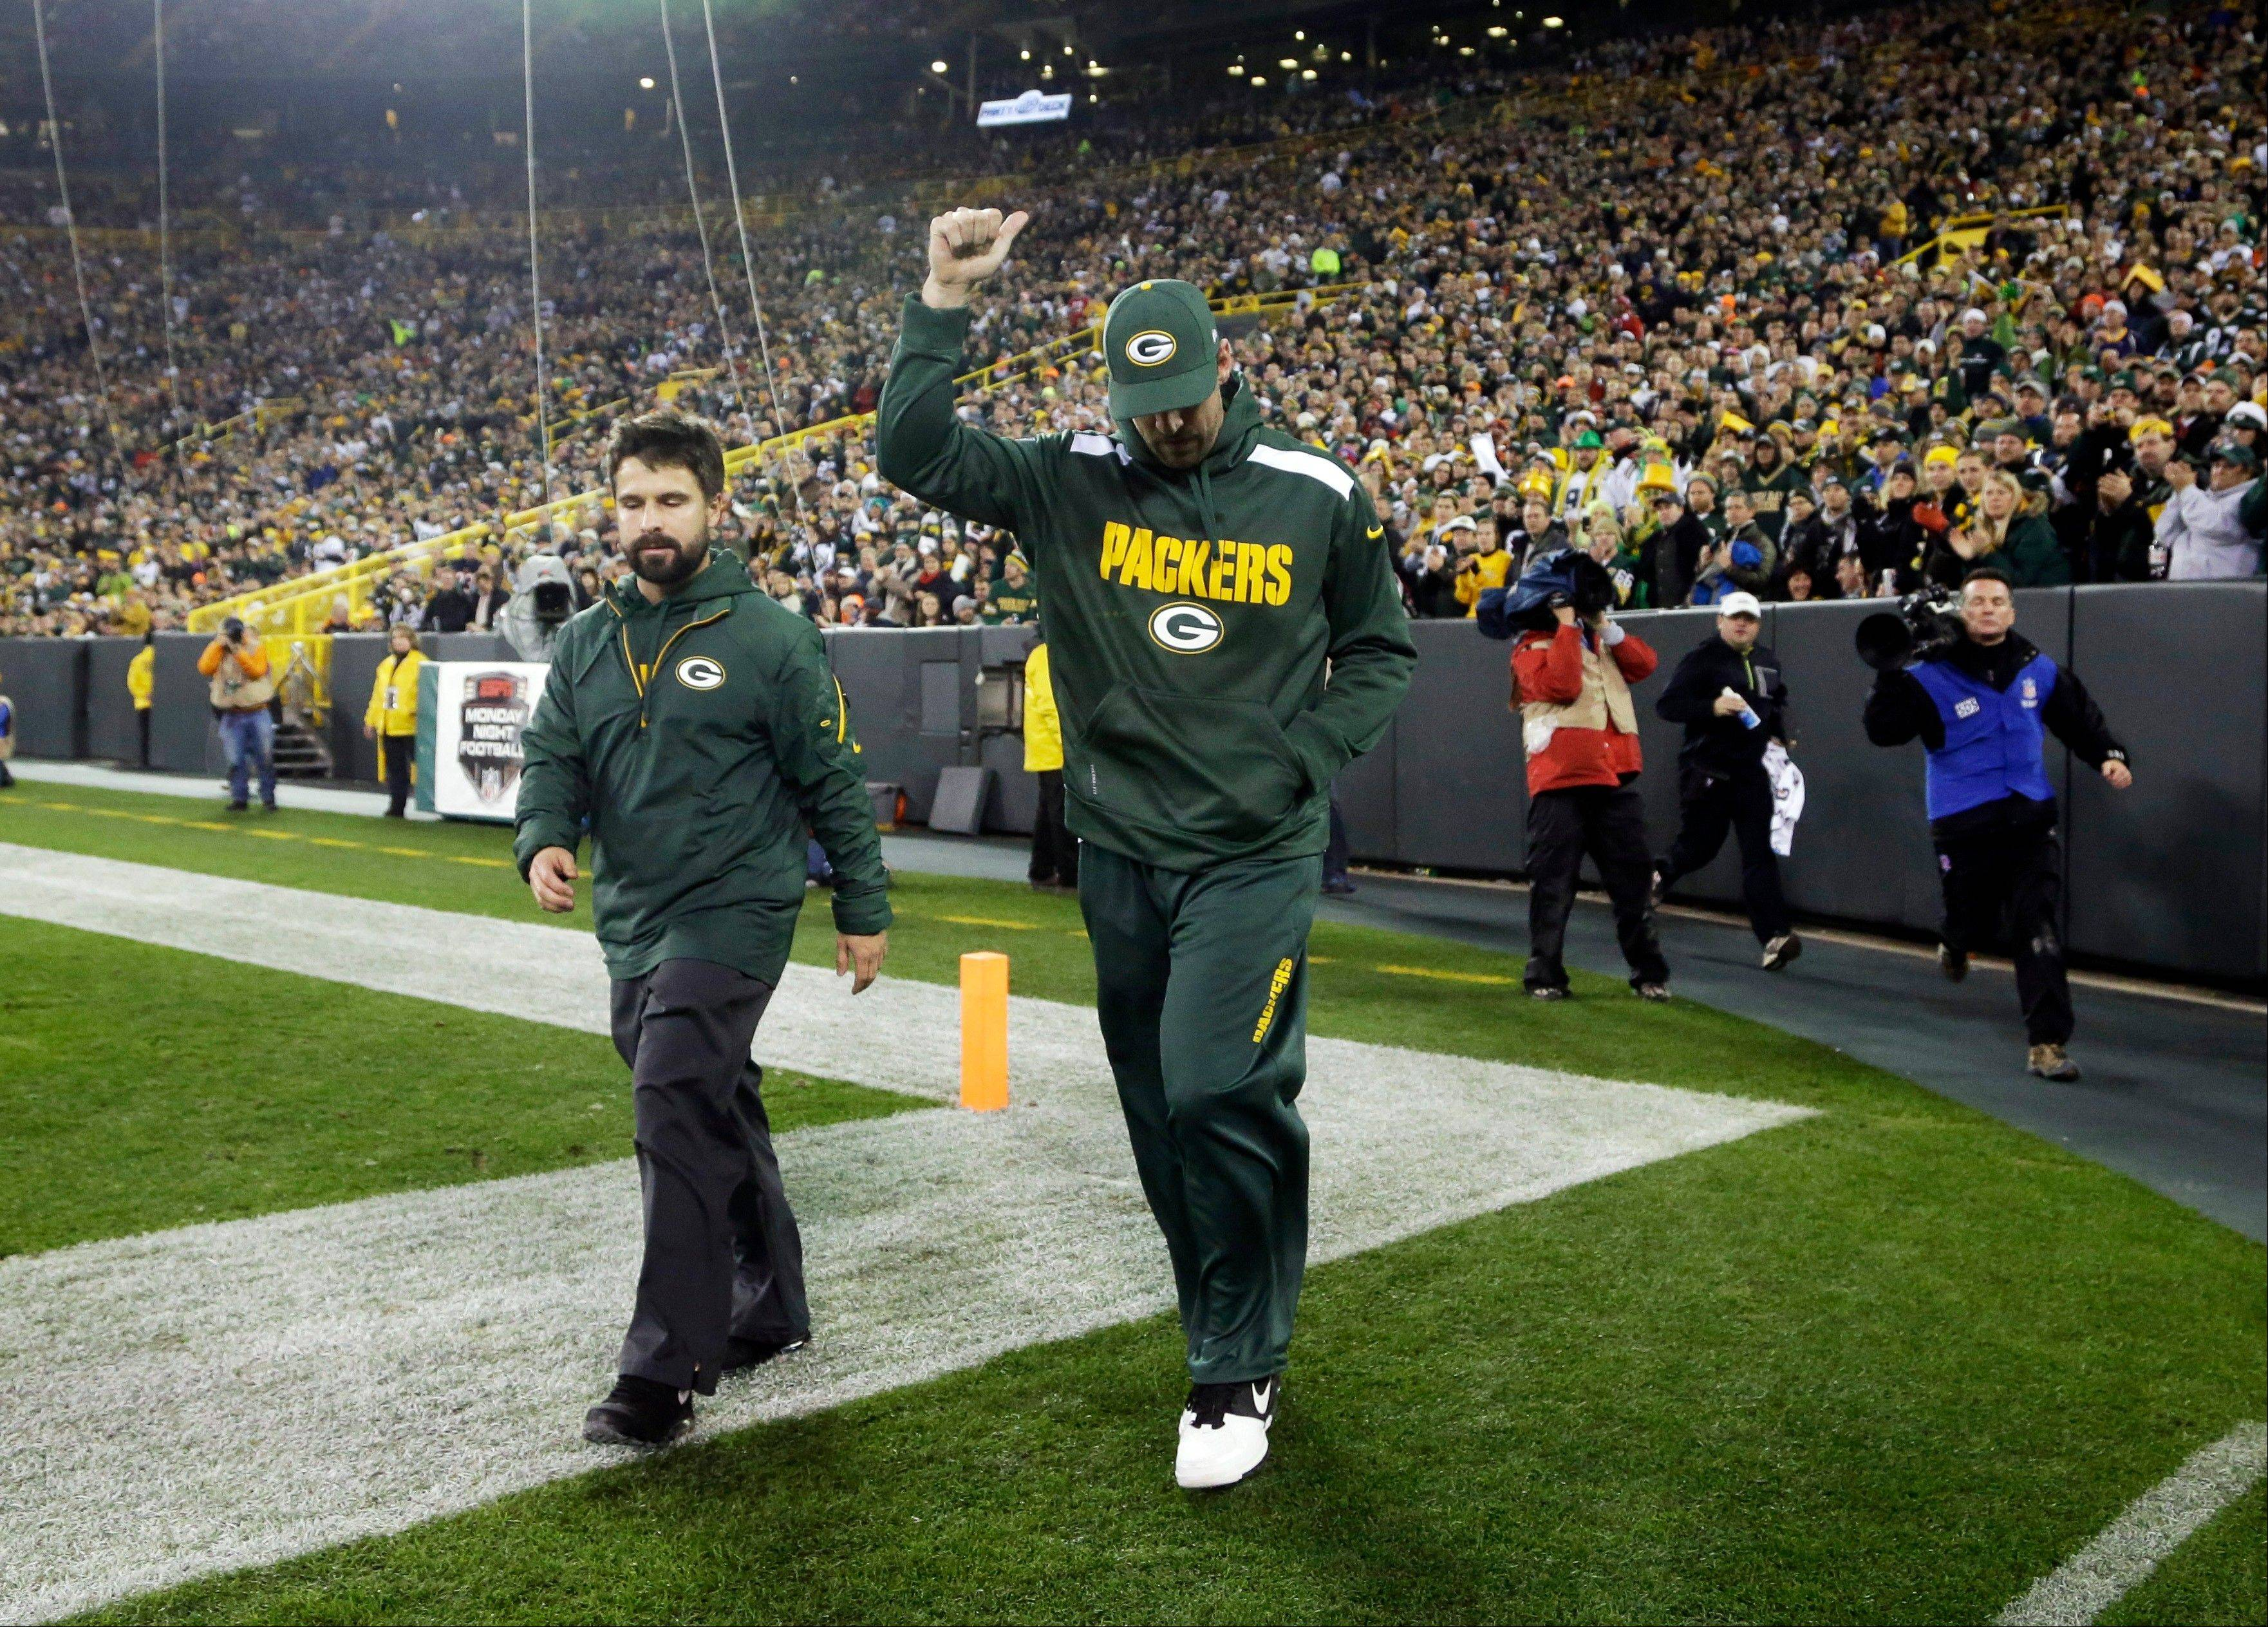 Green Bay Packers' Aaron Rodgers gives a thumbs up to fans as he walks back onto the field during the second half. Rodgers left the game in the first half after being sacked by Shea McClellin.